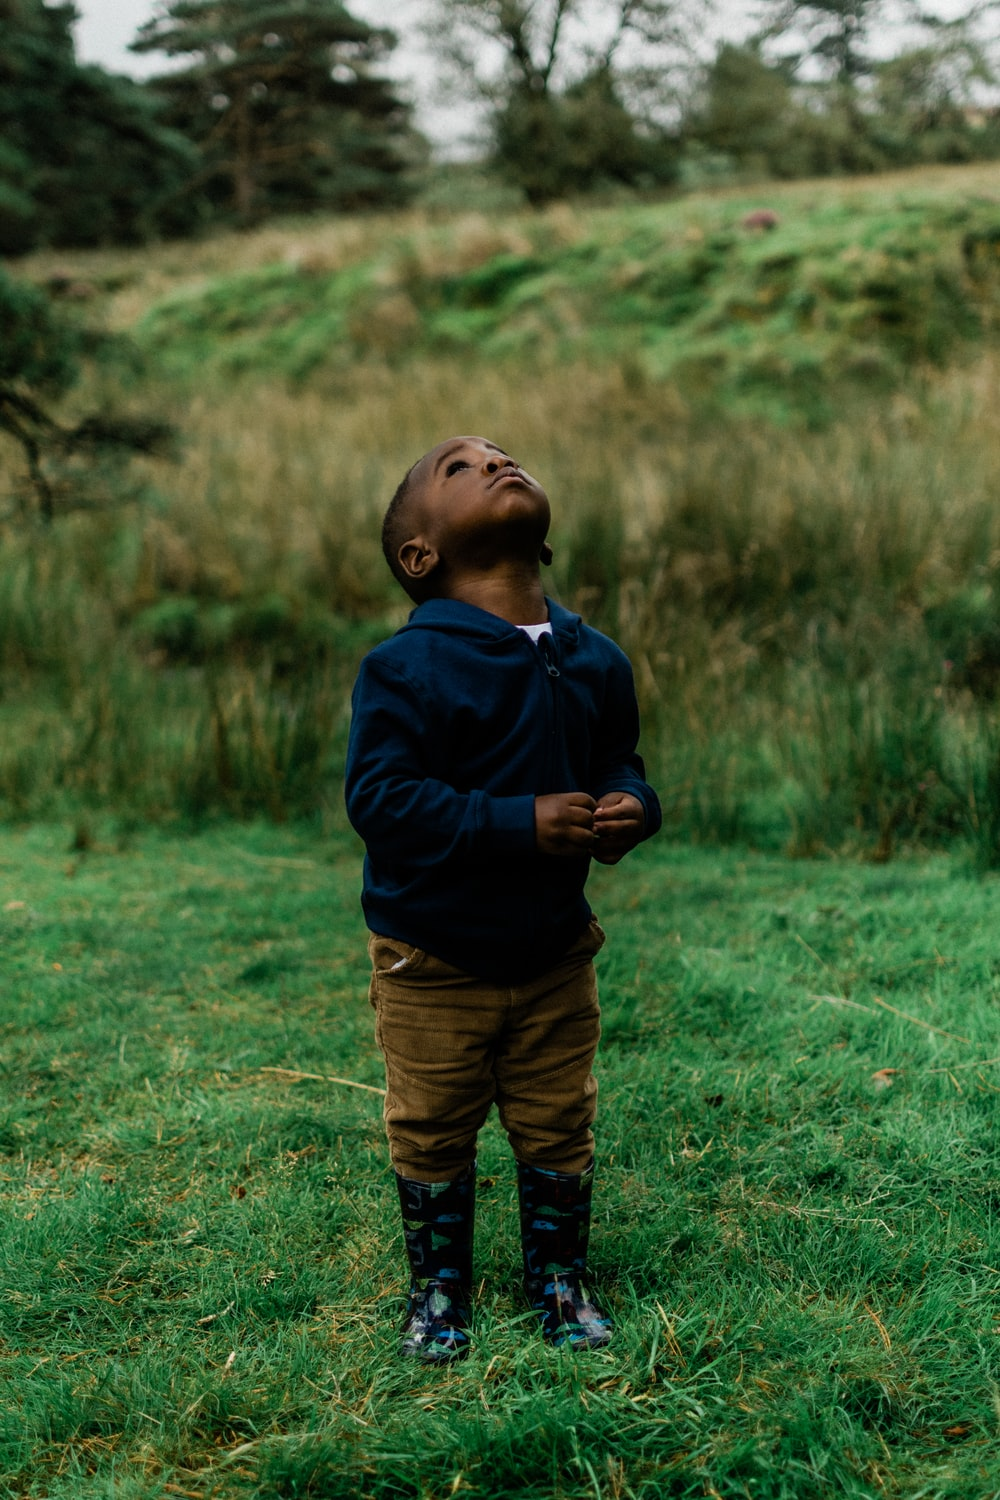 boy in blue hoodie and brown pants standing on green grass field during daytime